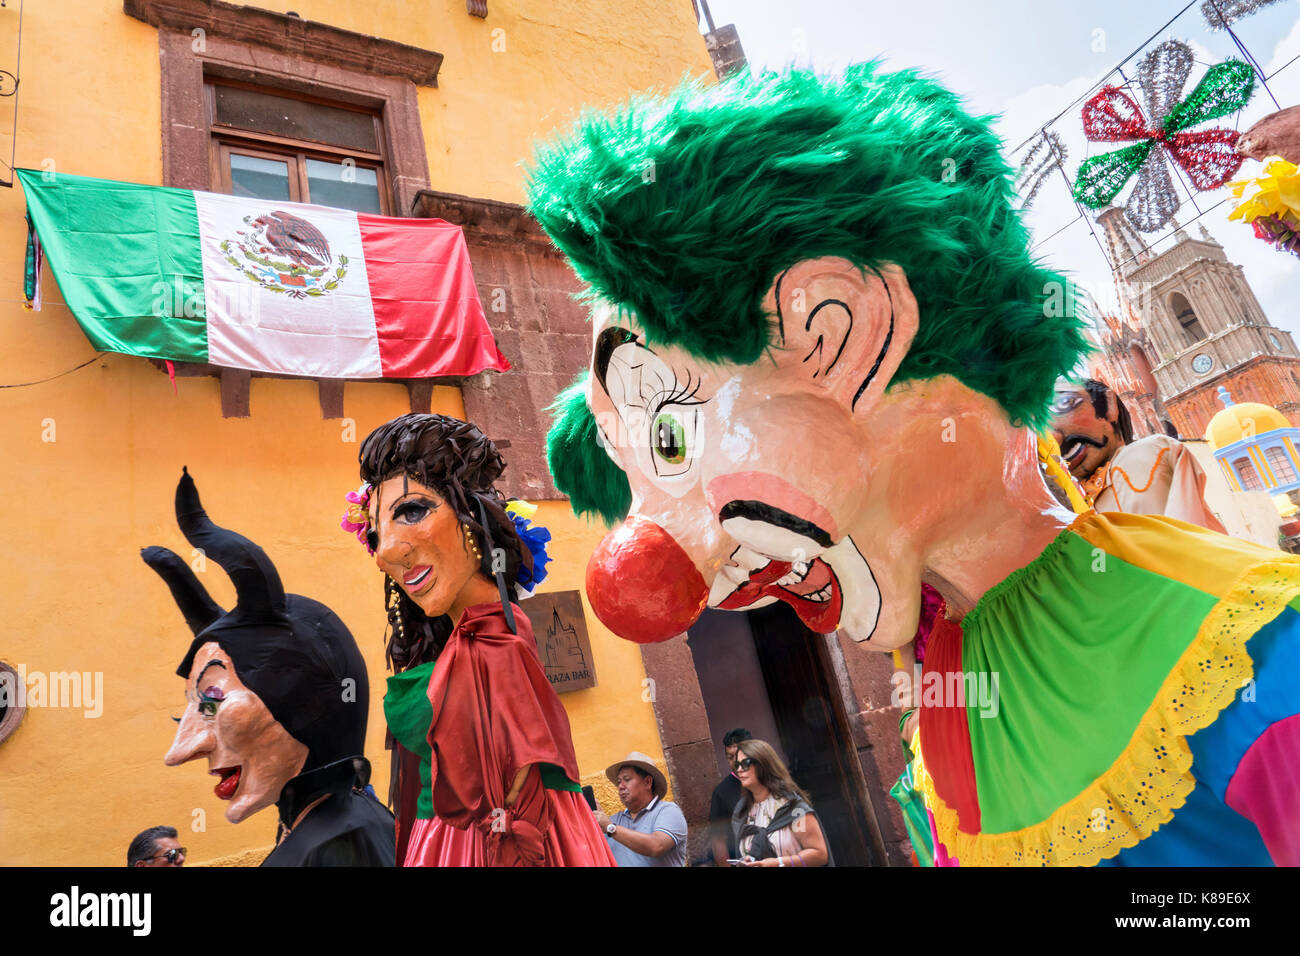 Giant papier mâché puppets called mojigangas dance in the streets during a children's parade celebrating - Stock Image